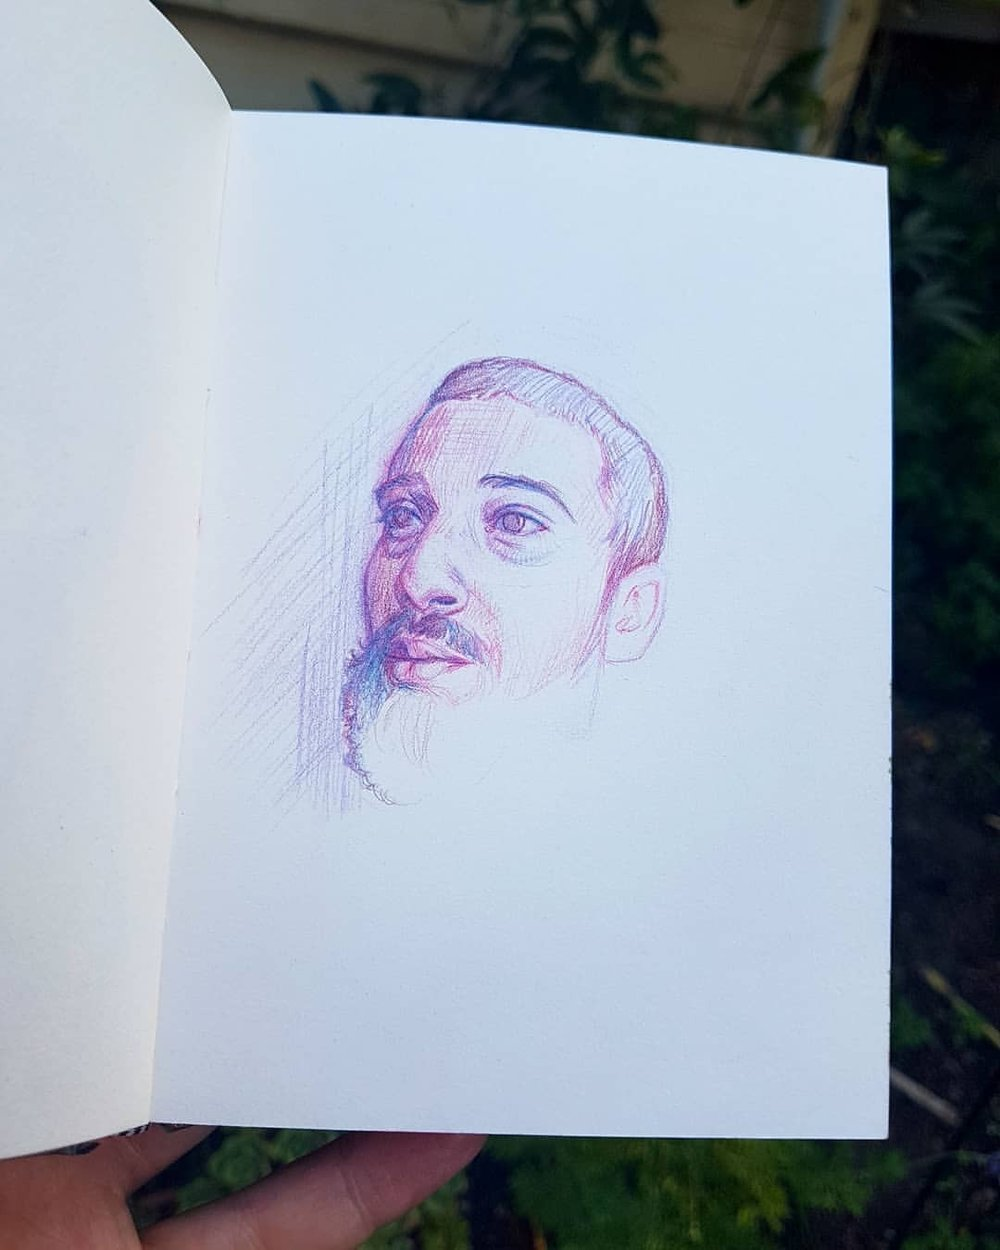 "Sometimes I do a drawing and half way through I think ""Oh that's pretty good"" then I keep going to finish it and it ends up being just ok. So this time I just decided to stop and here's day 26 of #30faces30days  featuring Akim Pina.    #sketchbook #portrait #beard #drawing #prismacolor #colerase #pencilportrait ##march2018 #australianartist #melbourneartist #belindaillustrates @changelingartist @sktchyapp"